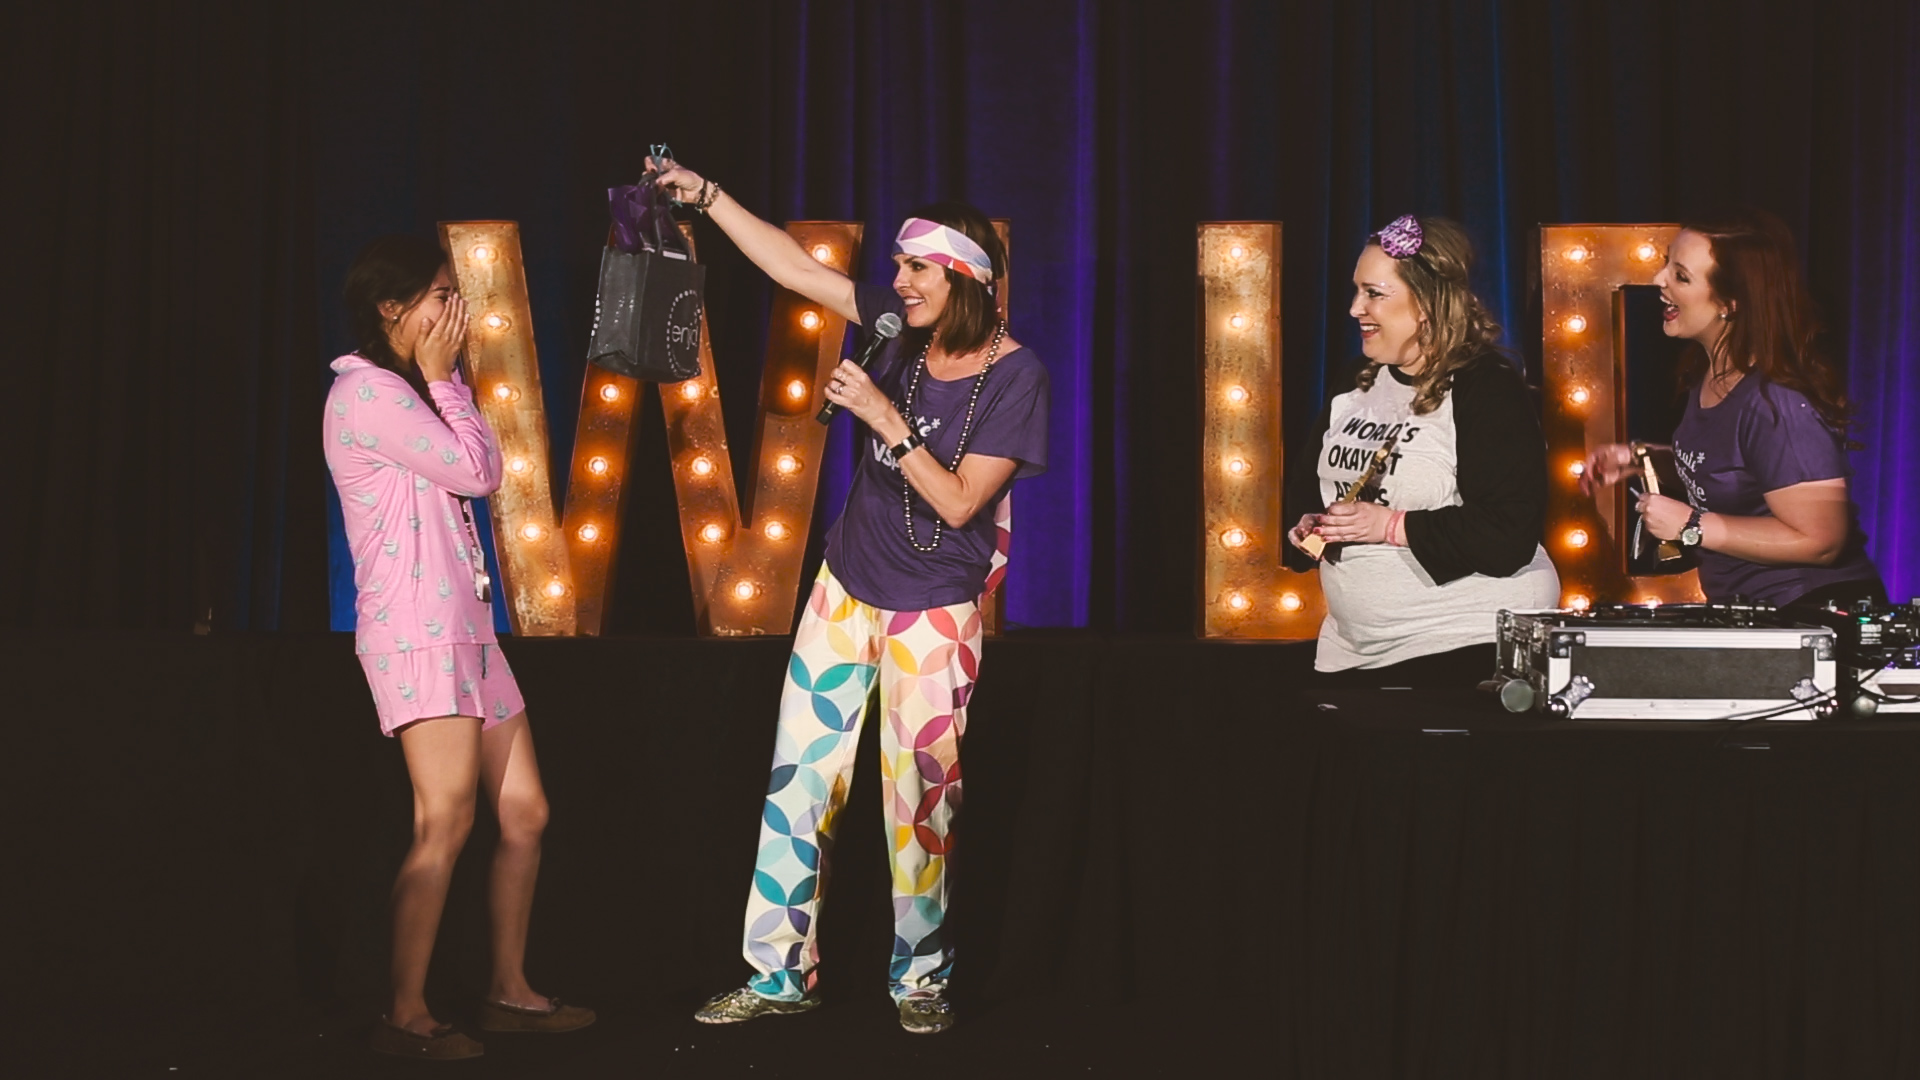 Erin Condren presented this extra special award and partied the night away with everyone in her lounge at the Planjama.